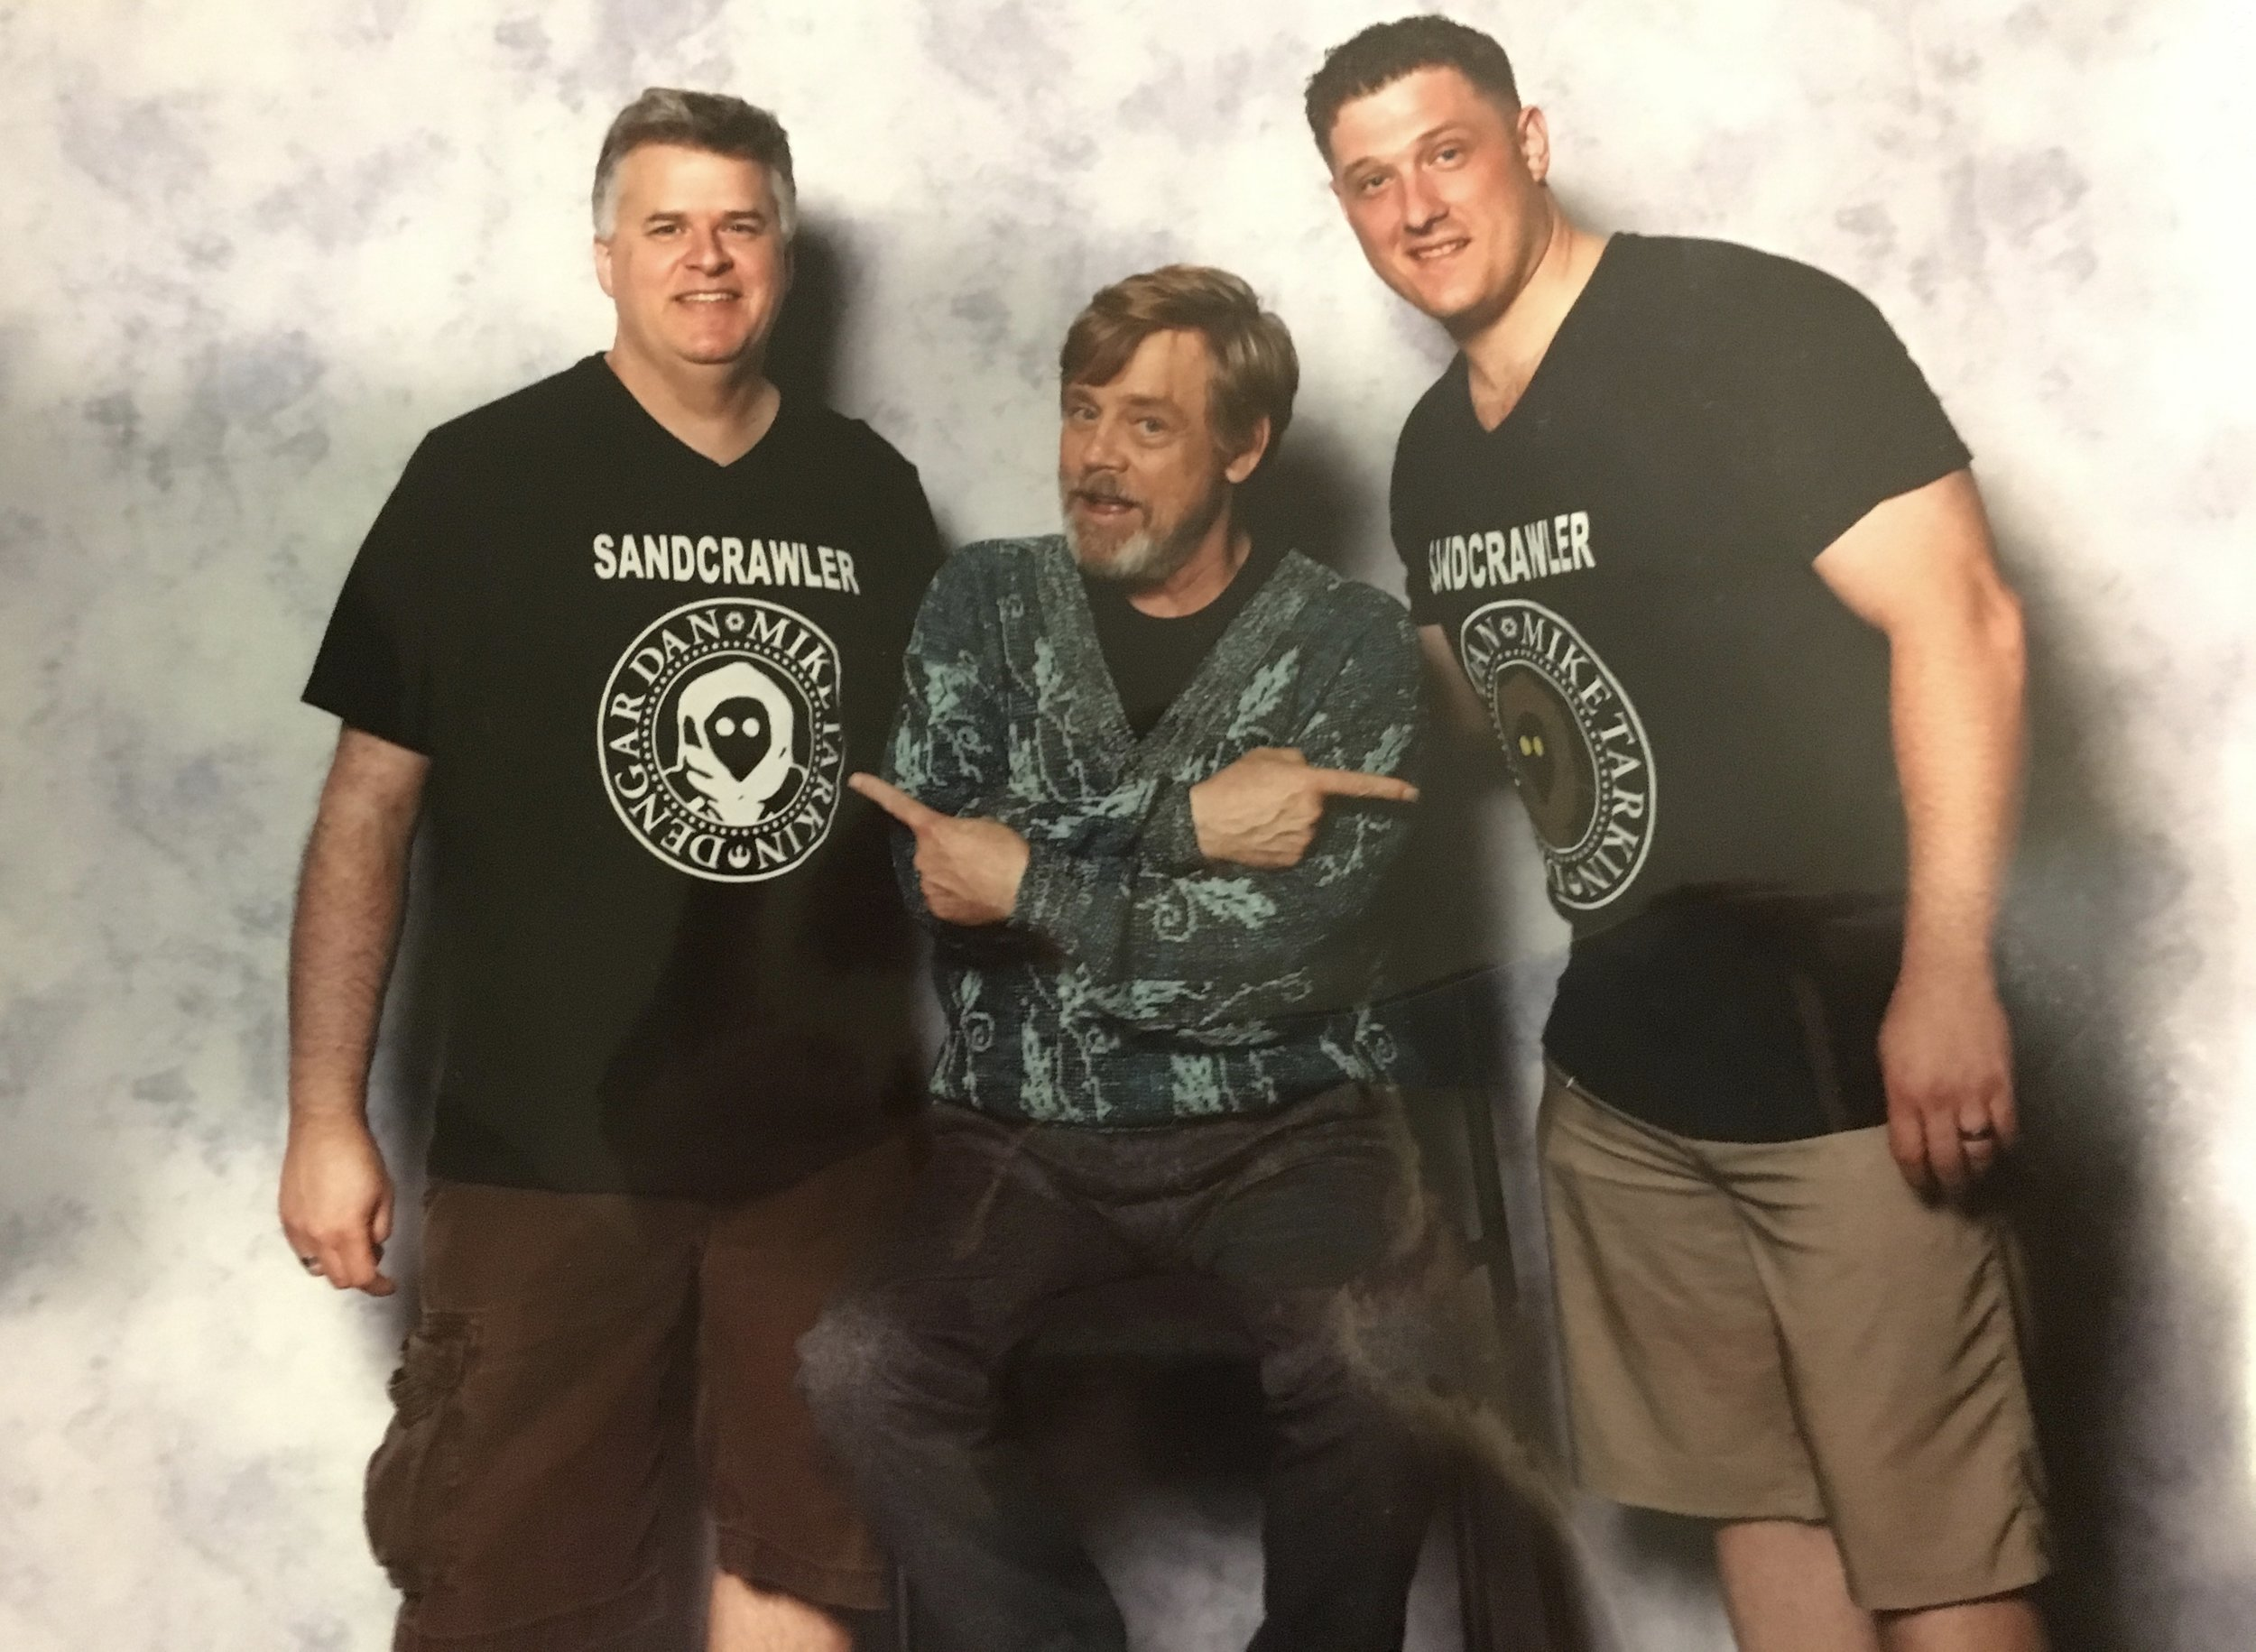 Mac and Dan meet Luke Skywalker himself, Mark Hamill at Star Wars Celebration Orlando 2017. He is clearly impressed with our show t-shirts.